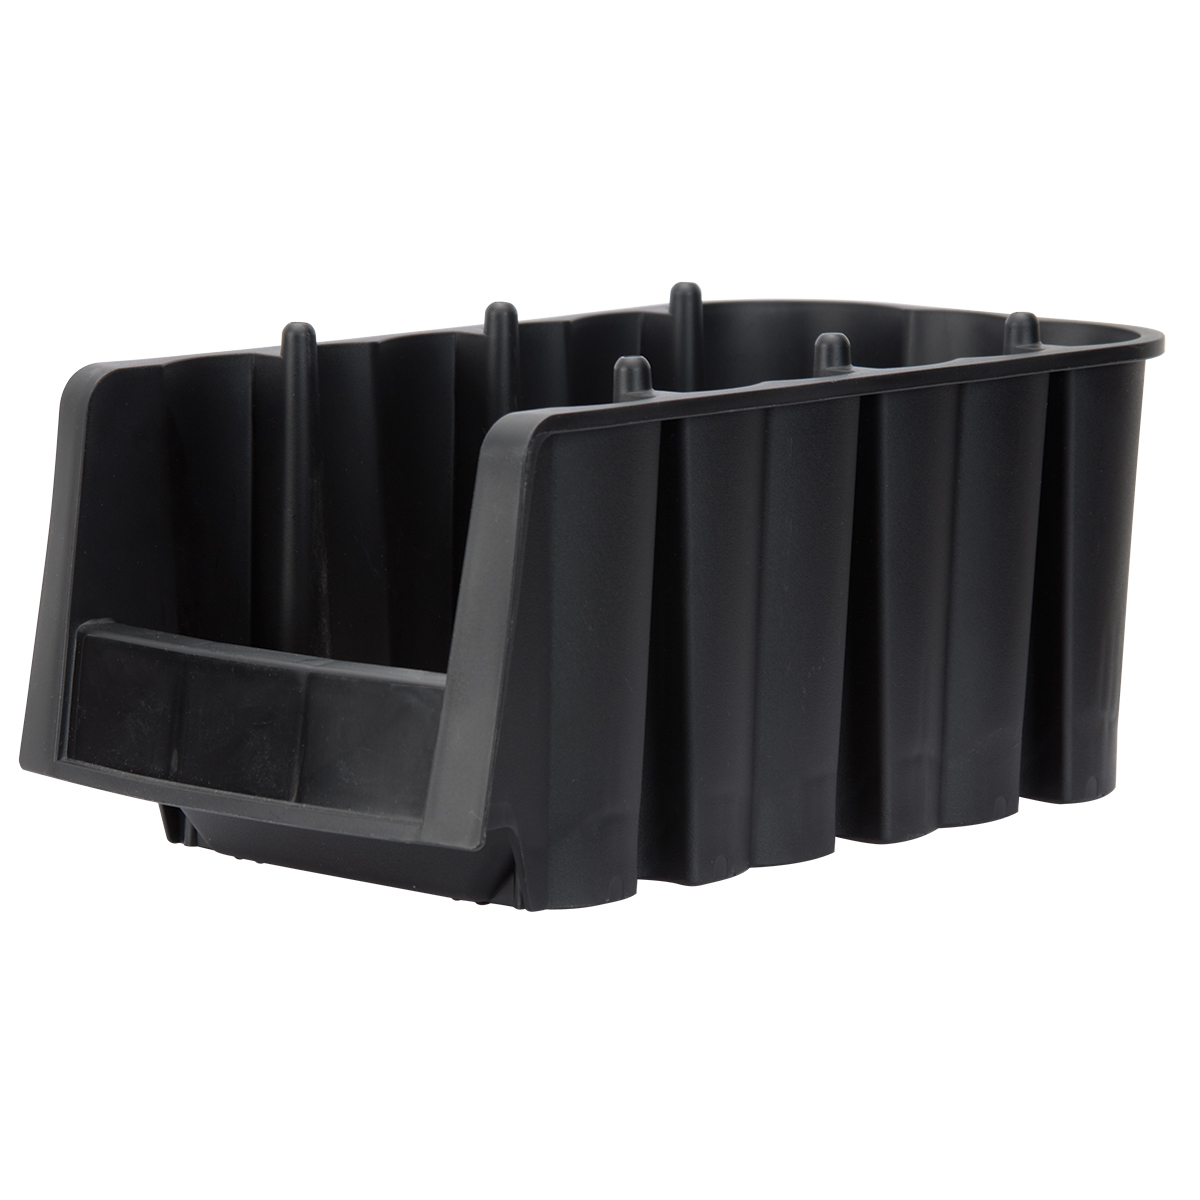 Economy Shelf Bin 11-7/8 x 6-5/8 x 5, Black (30716BLACK).  This item sold in carton quantities of 10.